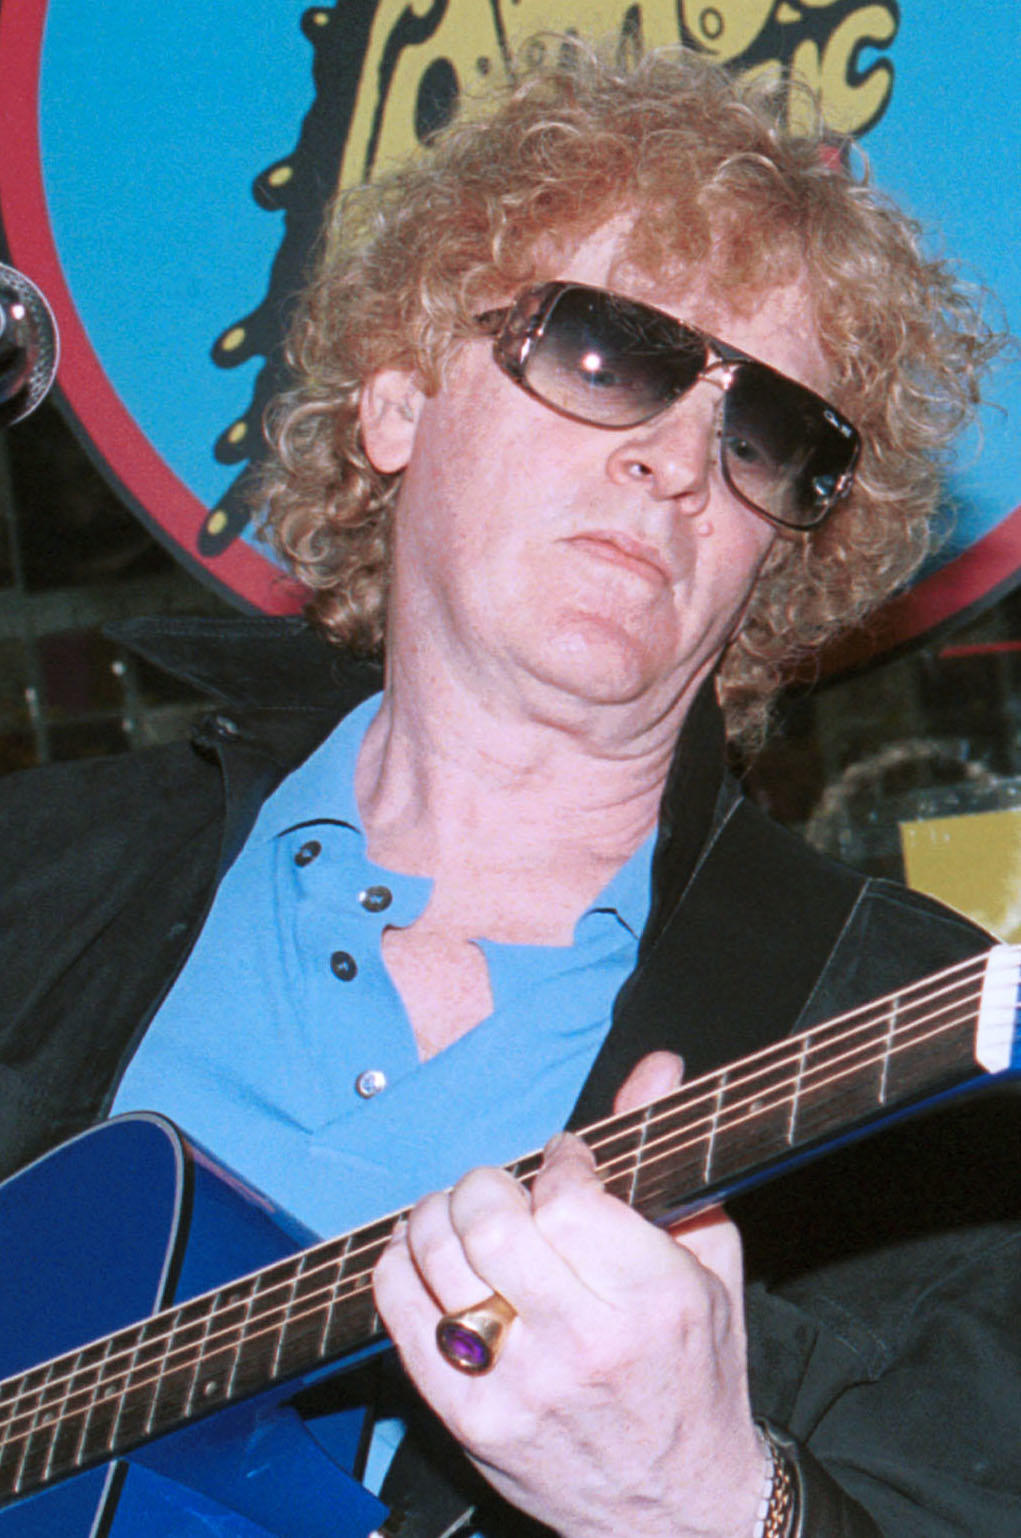 Ian Hunter performs at the Amoeba Music store in Hollywood.